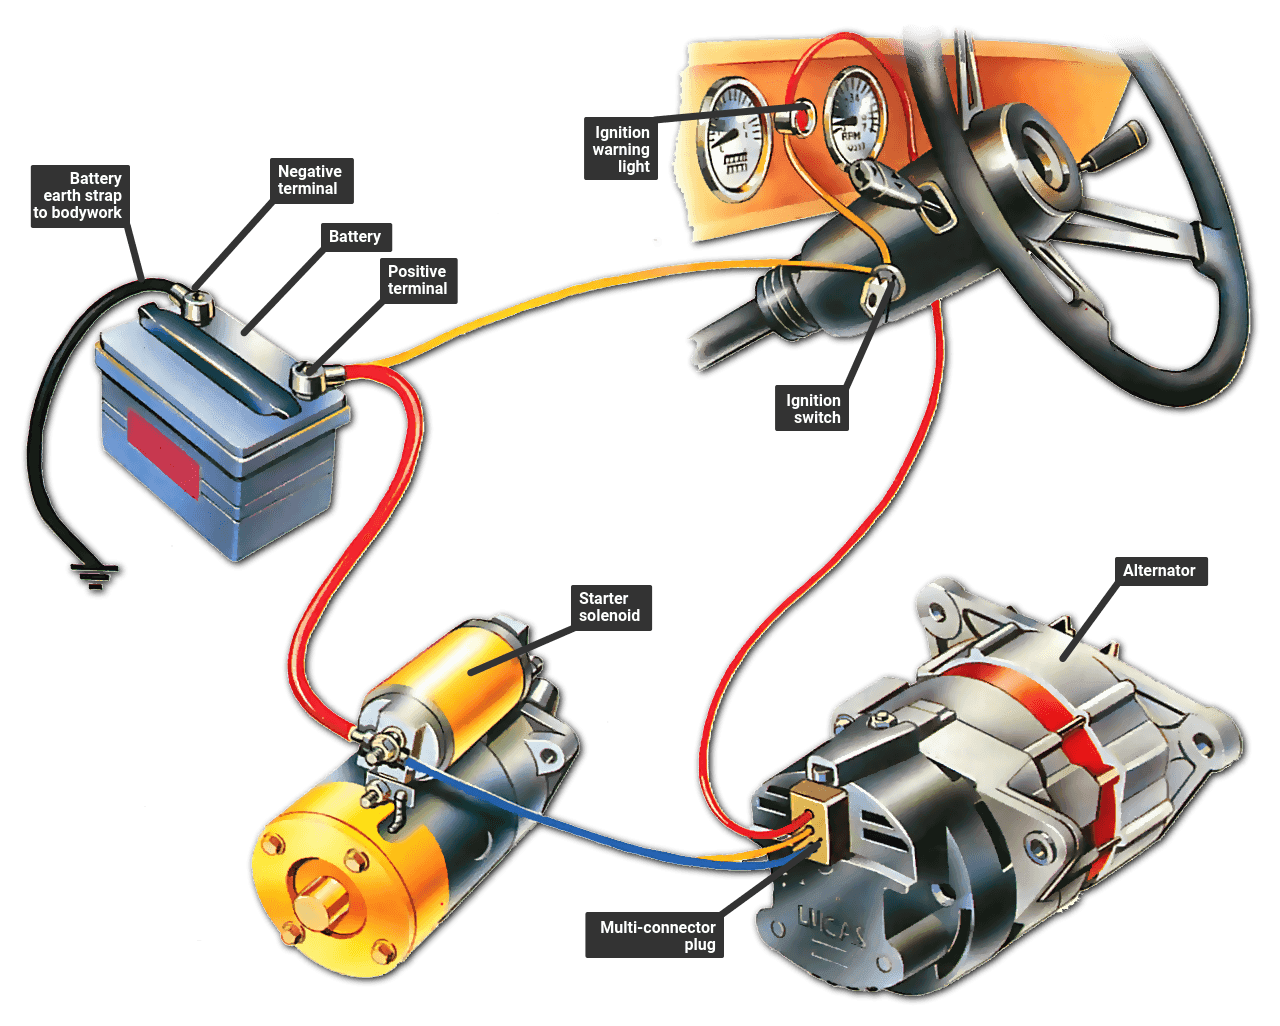 Troubleshooting The Ignition Warning Light How A Car Works Circuit Board Wiring Basics